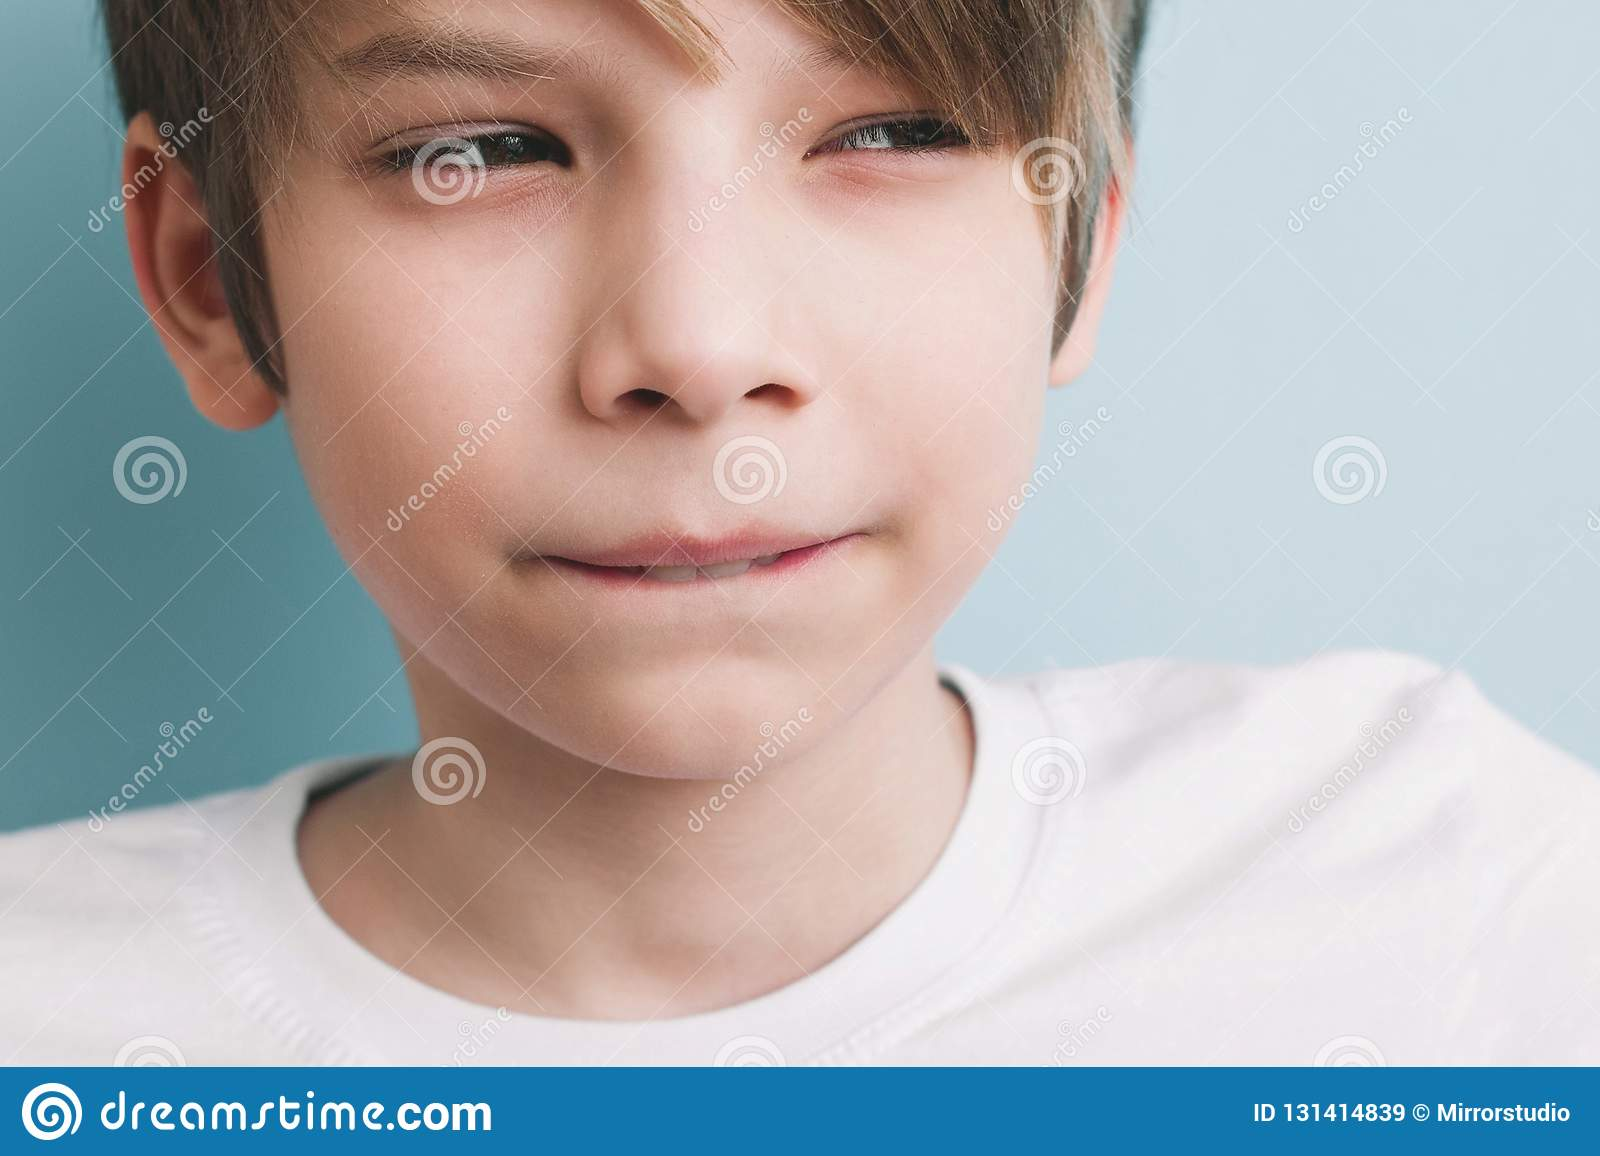 Thoughtful boy with bitter prank bitten his lower lip with his teeth and narrowed his eyes